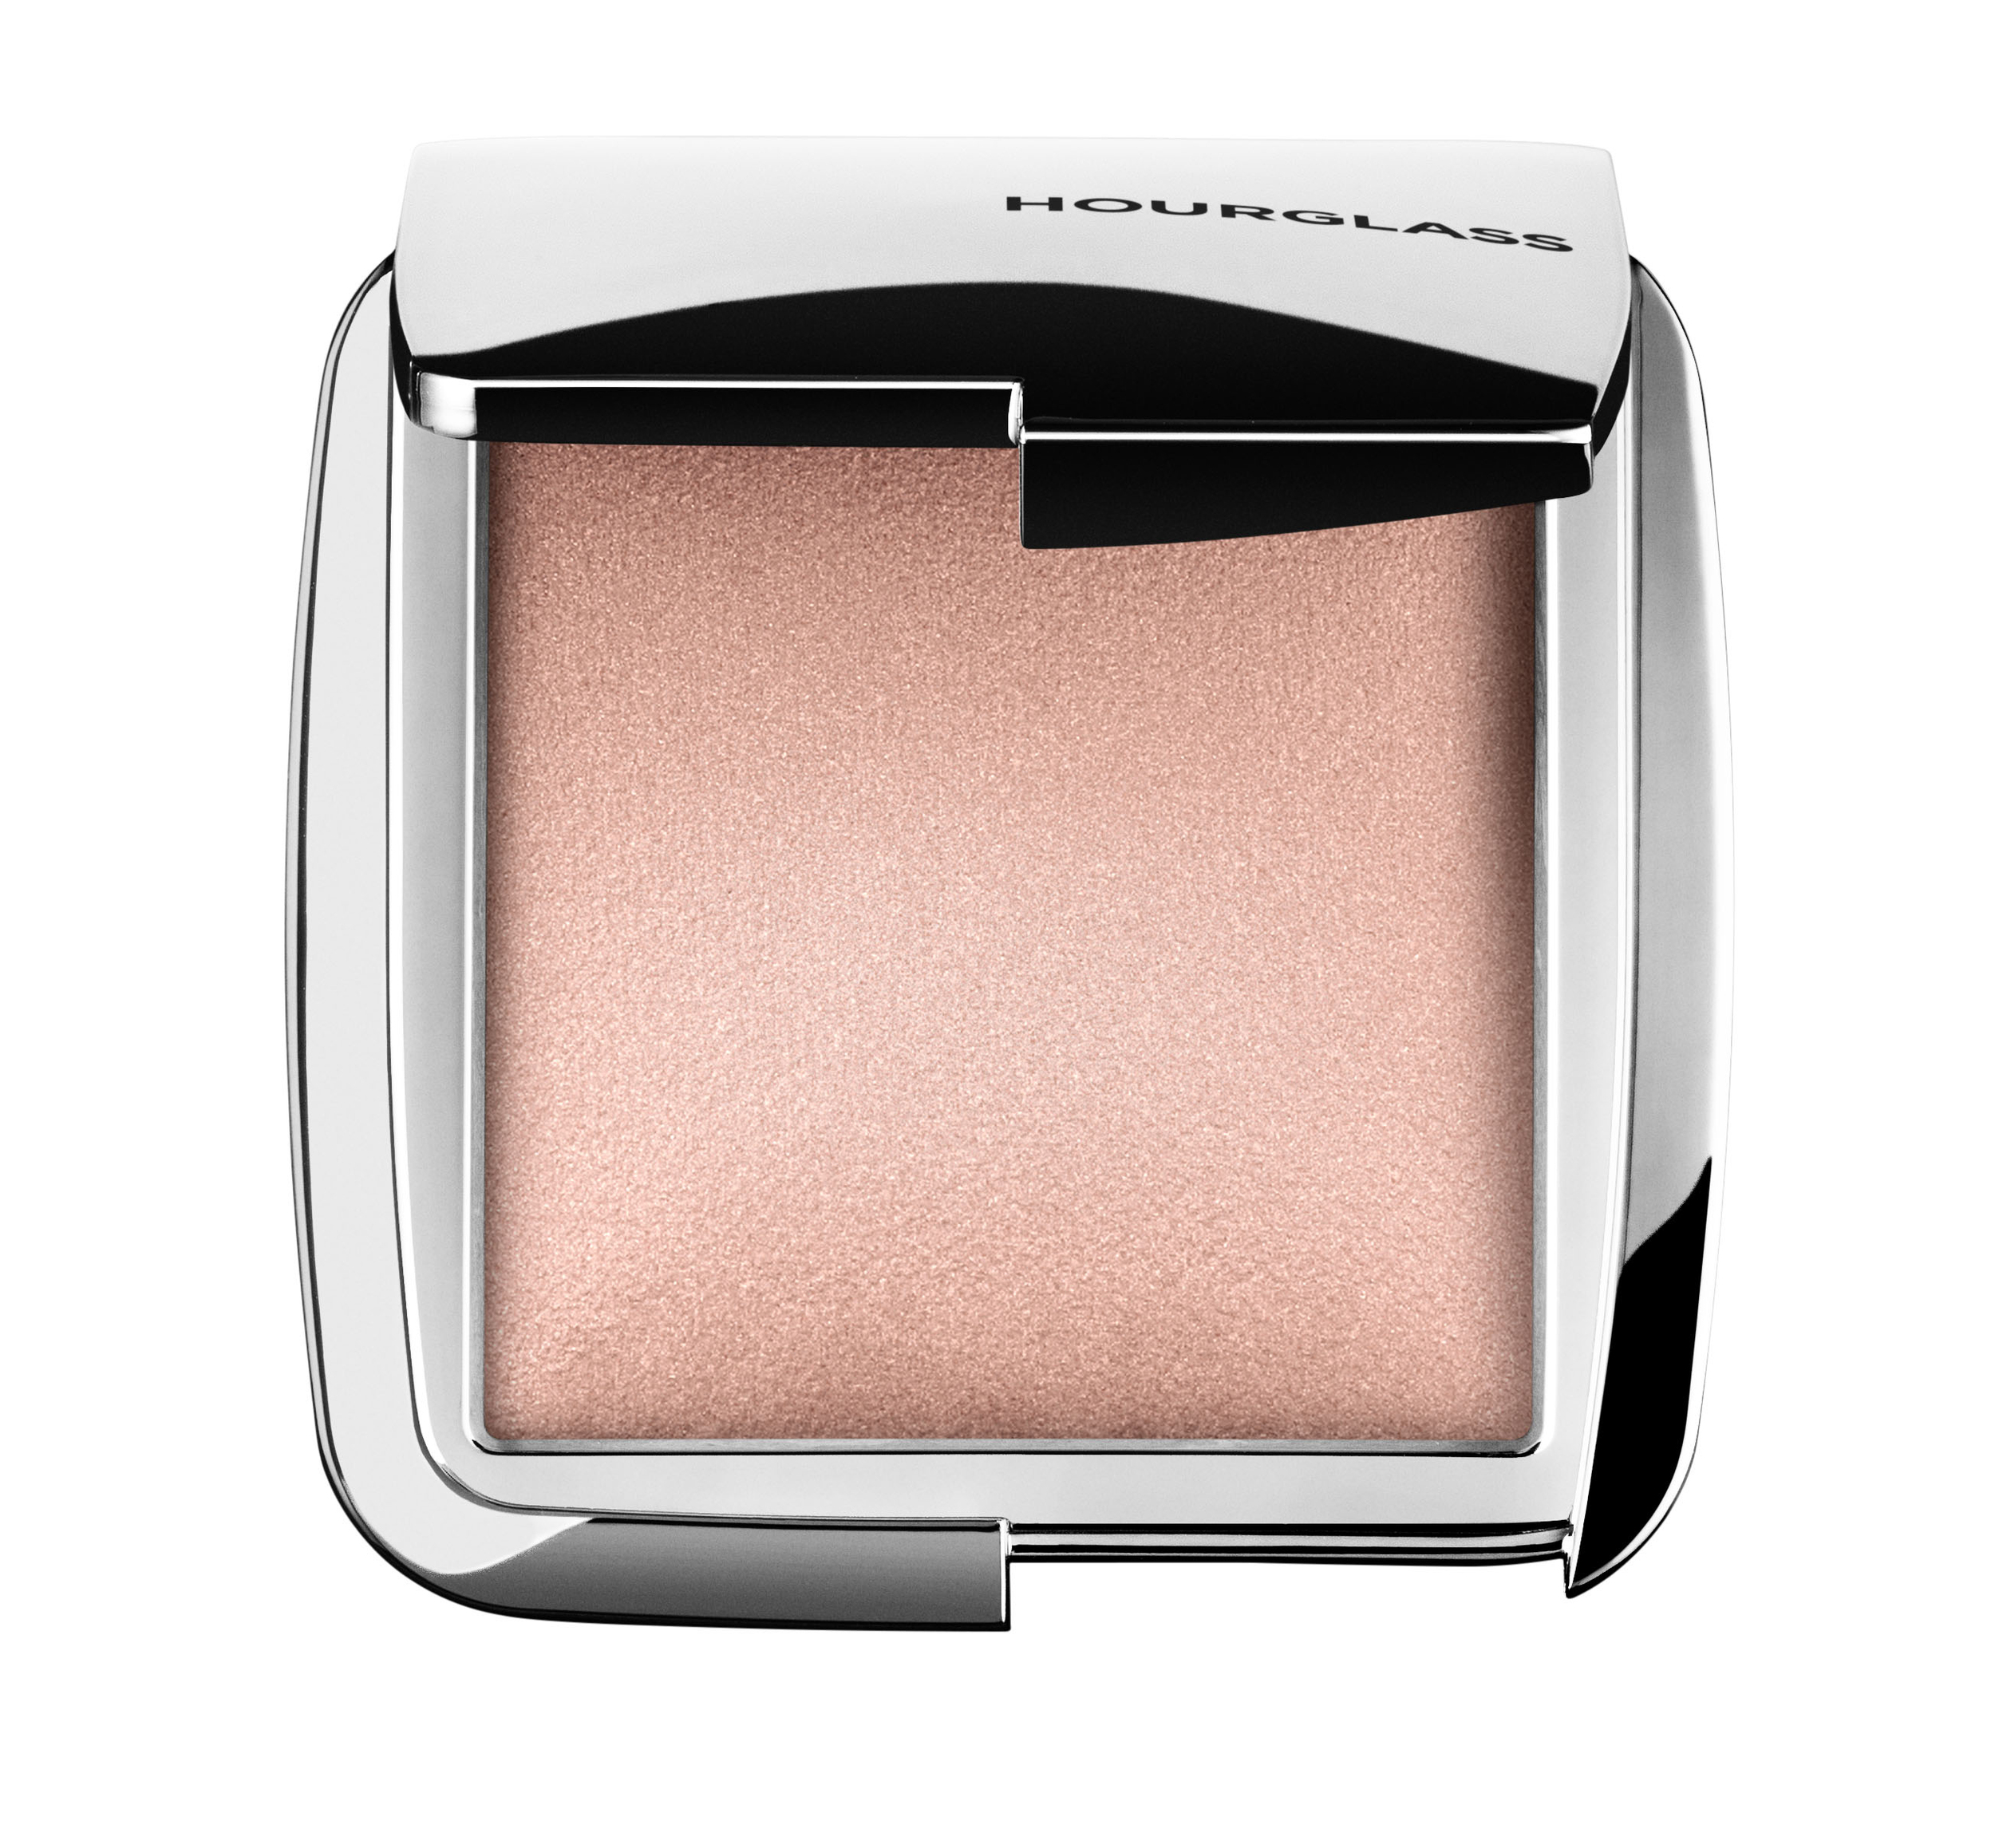 Hourglass Ambient Strobe Lighting Powder_Iridescent Strobe Light.jpg